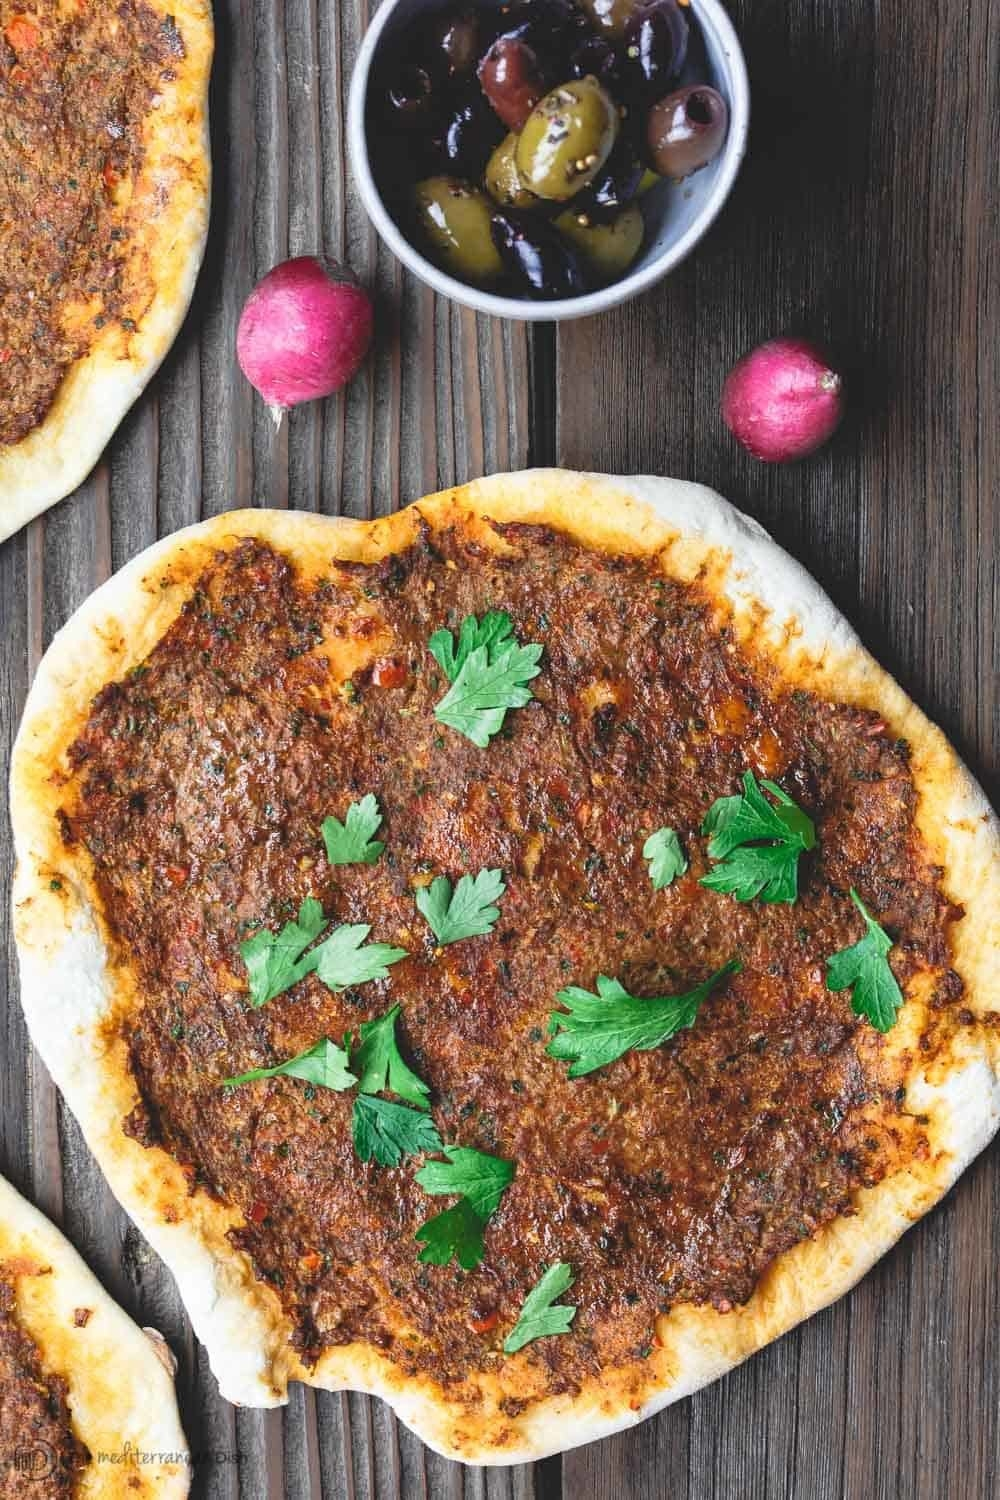 Lahmajoun, an Armenian thin-crust flatbread topped with spices.